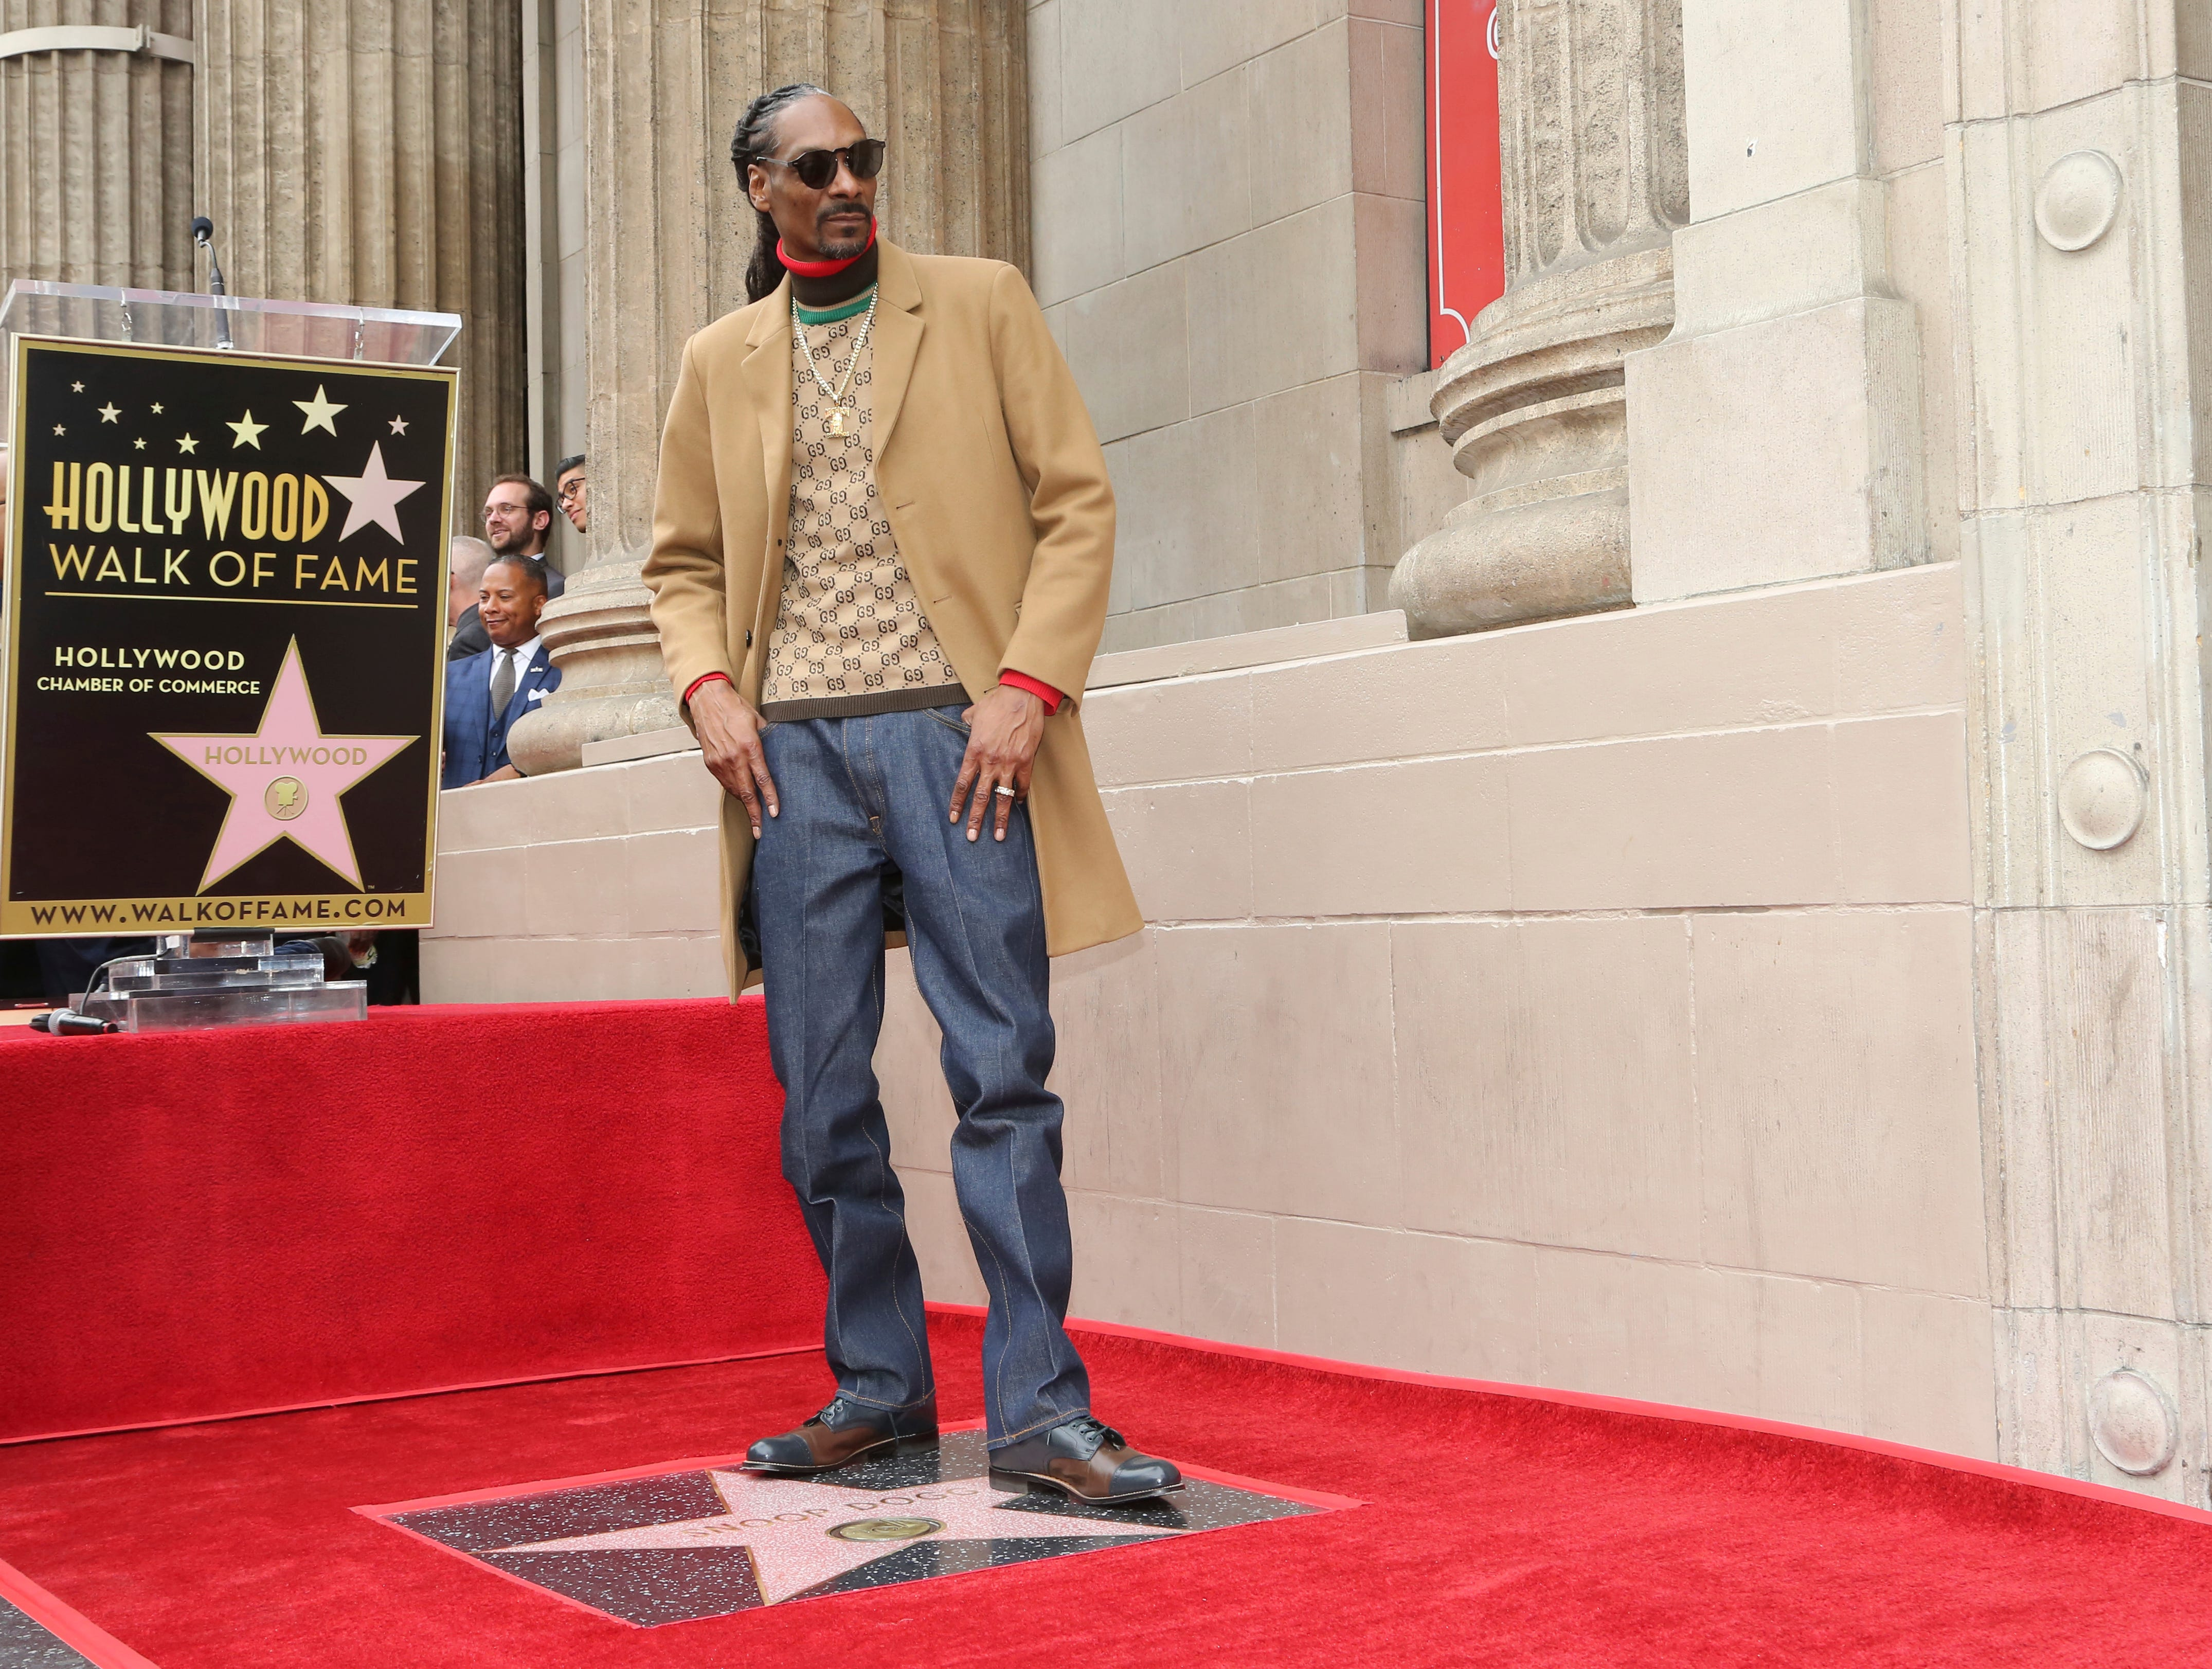 Rapper Snoop Dogg poses atop his new star on the Hollywood Walk of Fame following a ceremony in his honor on Monday, Nov. 19, 2018, in Los Angeles. (Photo by Willy Sanjuan/Invision/AP) ORG XMIT: CAPM105